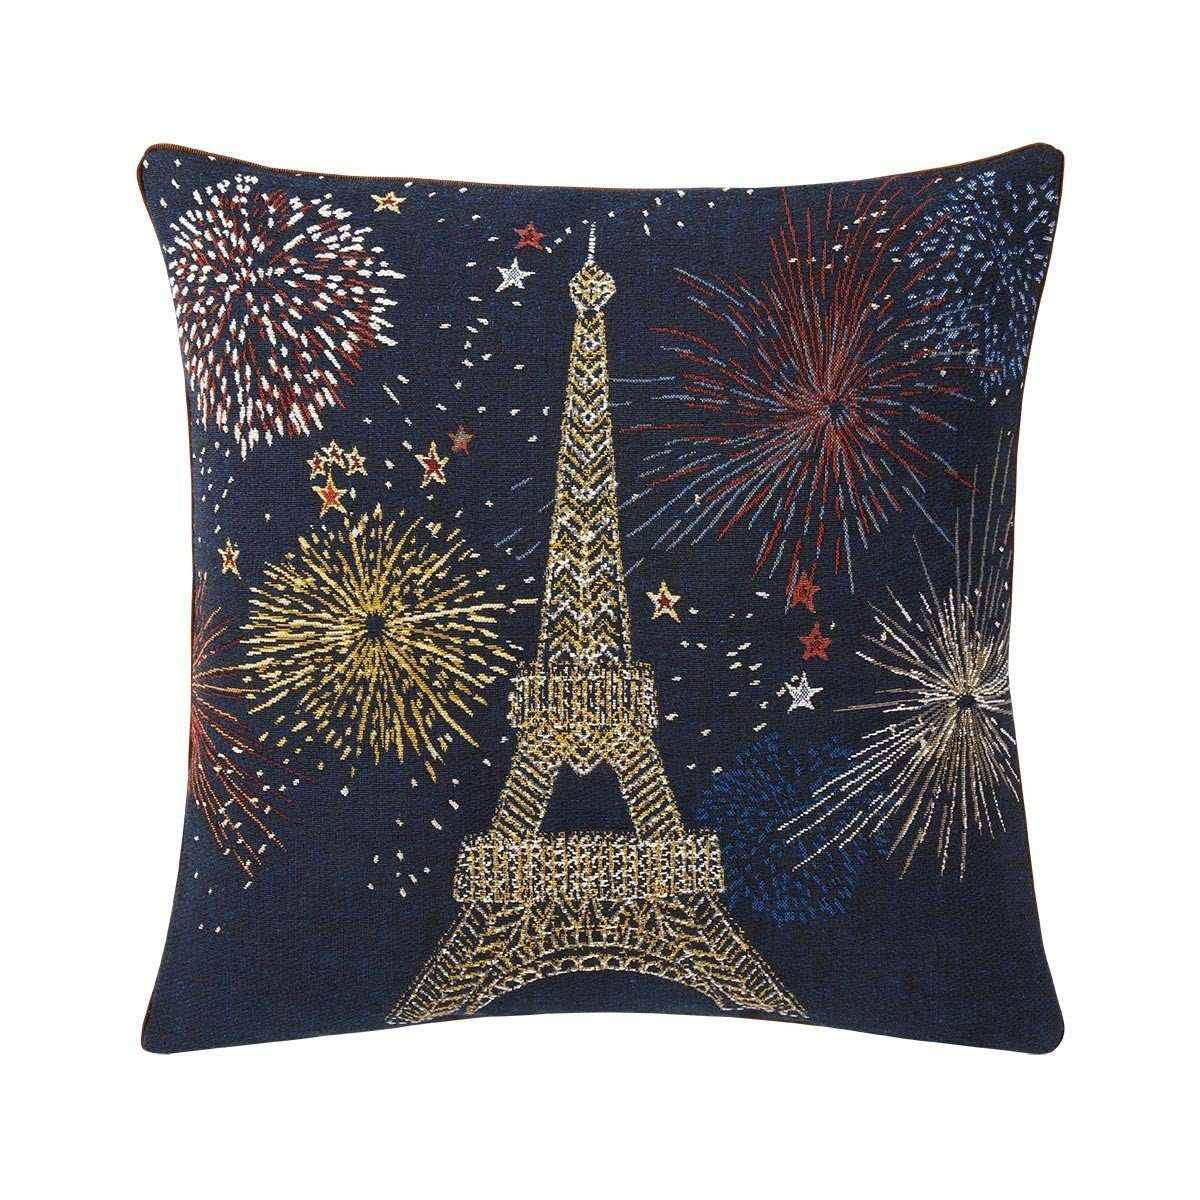 Joie Nuit Decorative Pillow by Iosis